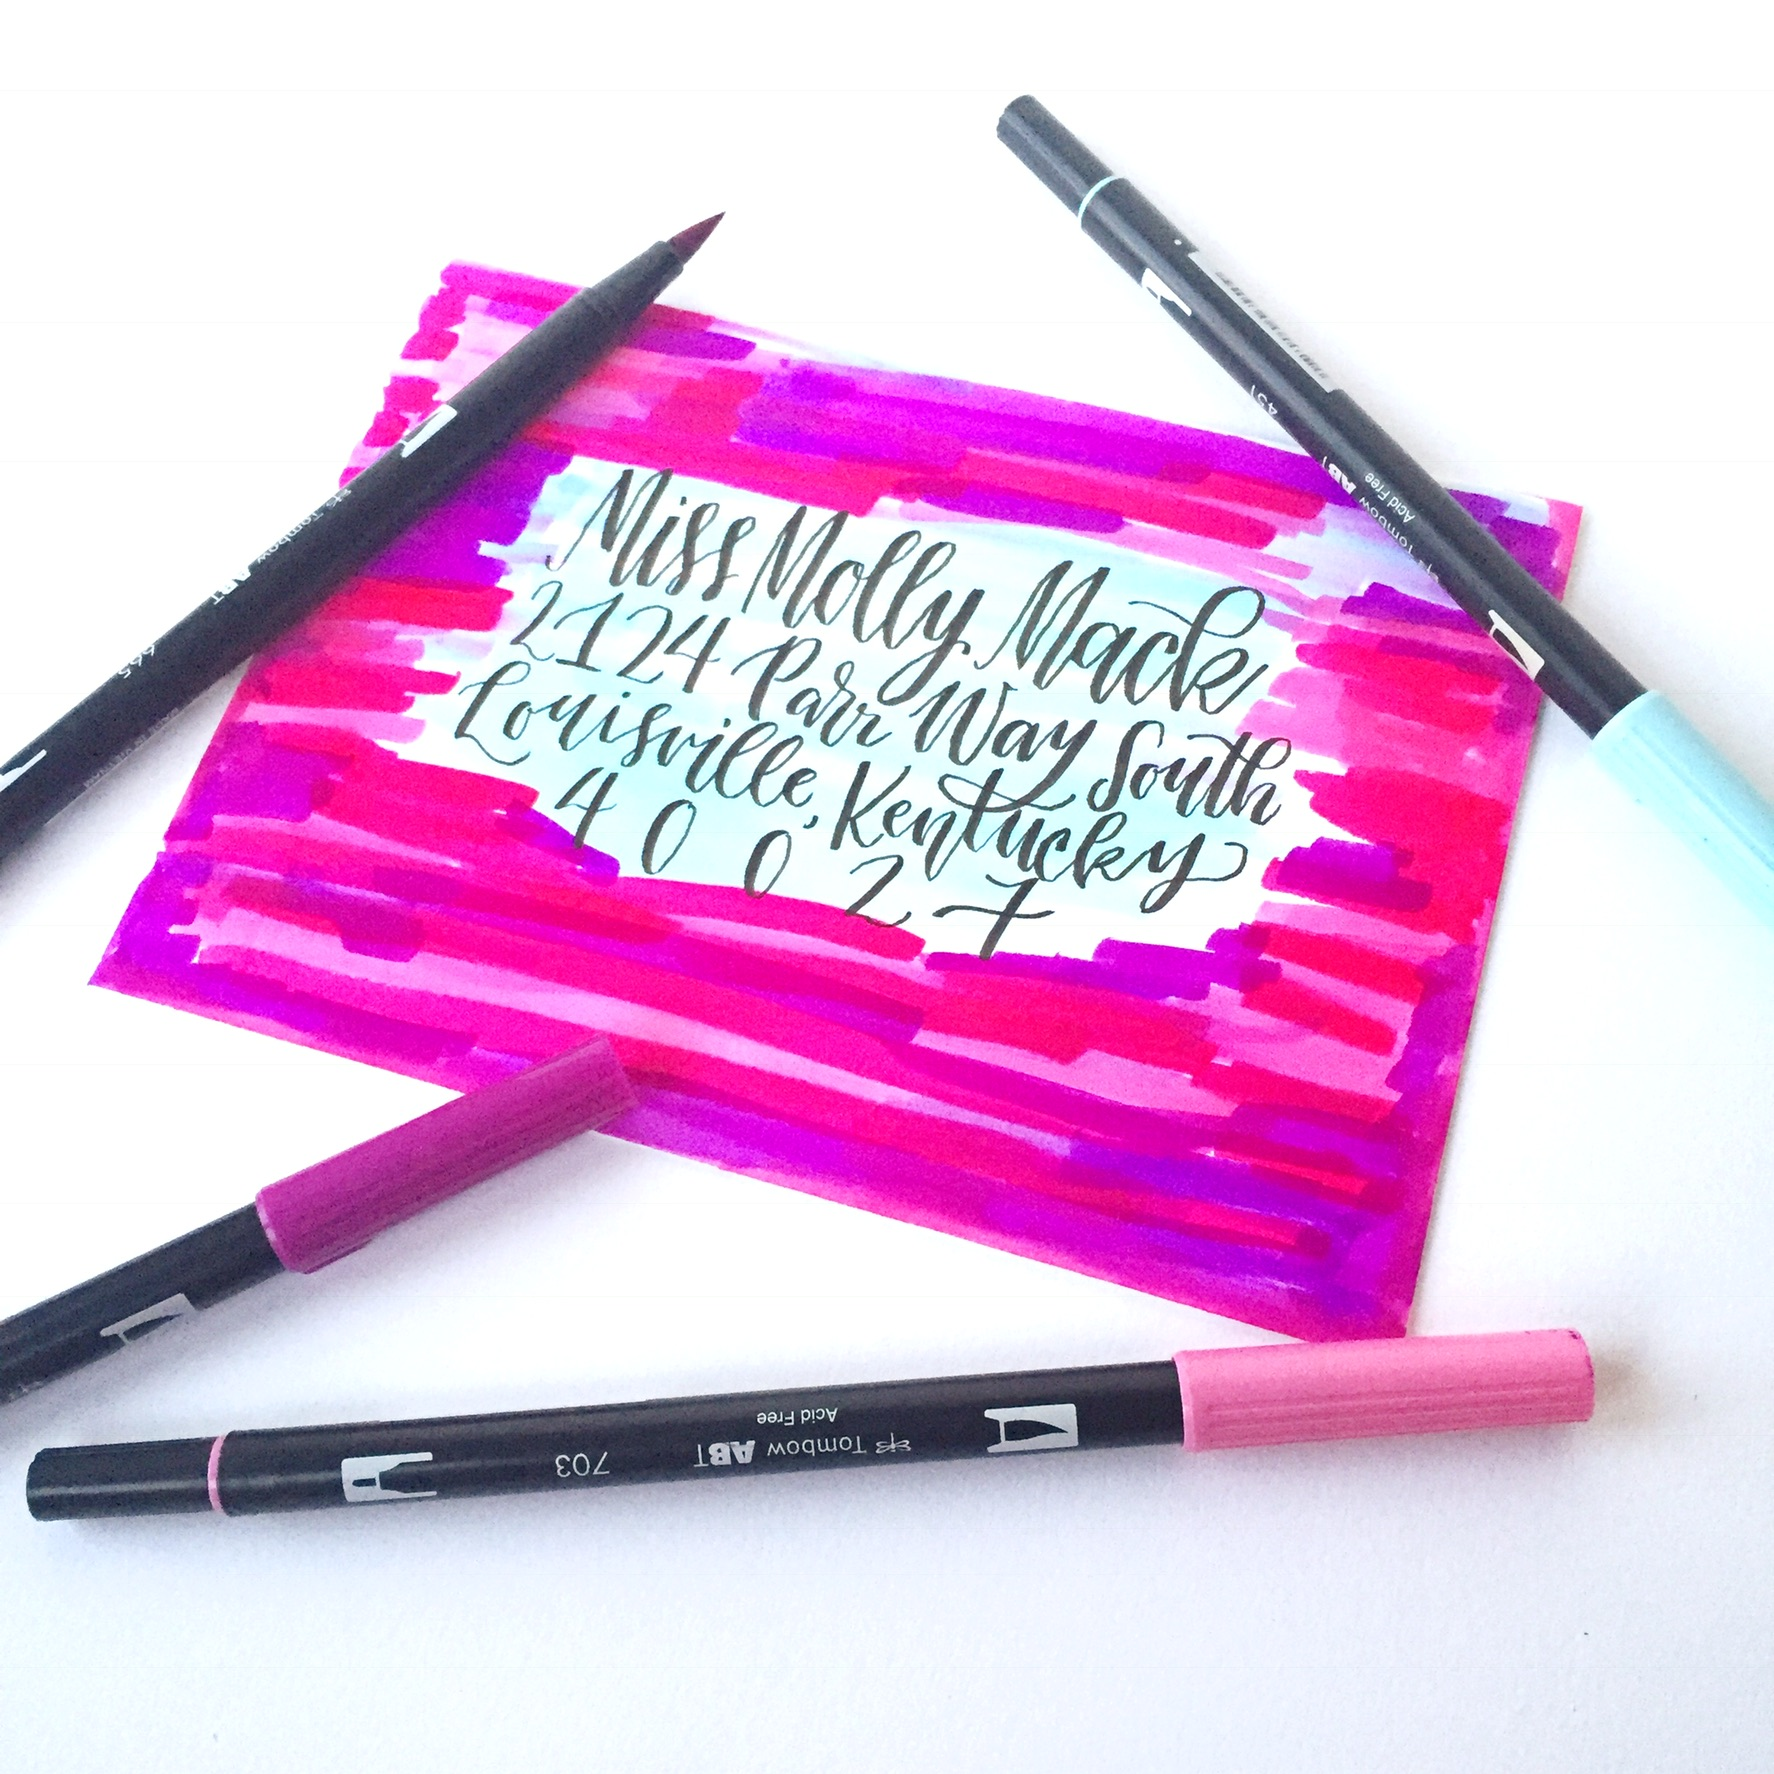 Lauren Fitzmaurice of @renmadecalligraphy teaches you 10 Happy Mail Hacks to use with your Tombow USA products! Use these tips and tricks to make a fun and creative envelope in 10 minutes or less! For more lettering tips and tricks check out renmadecalligraphy.com.